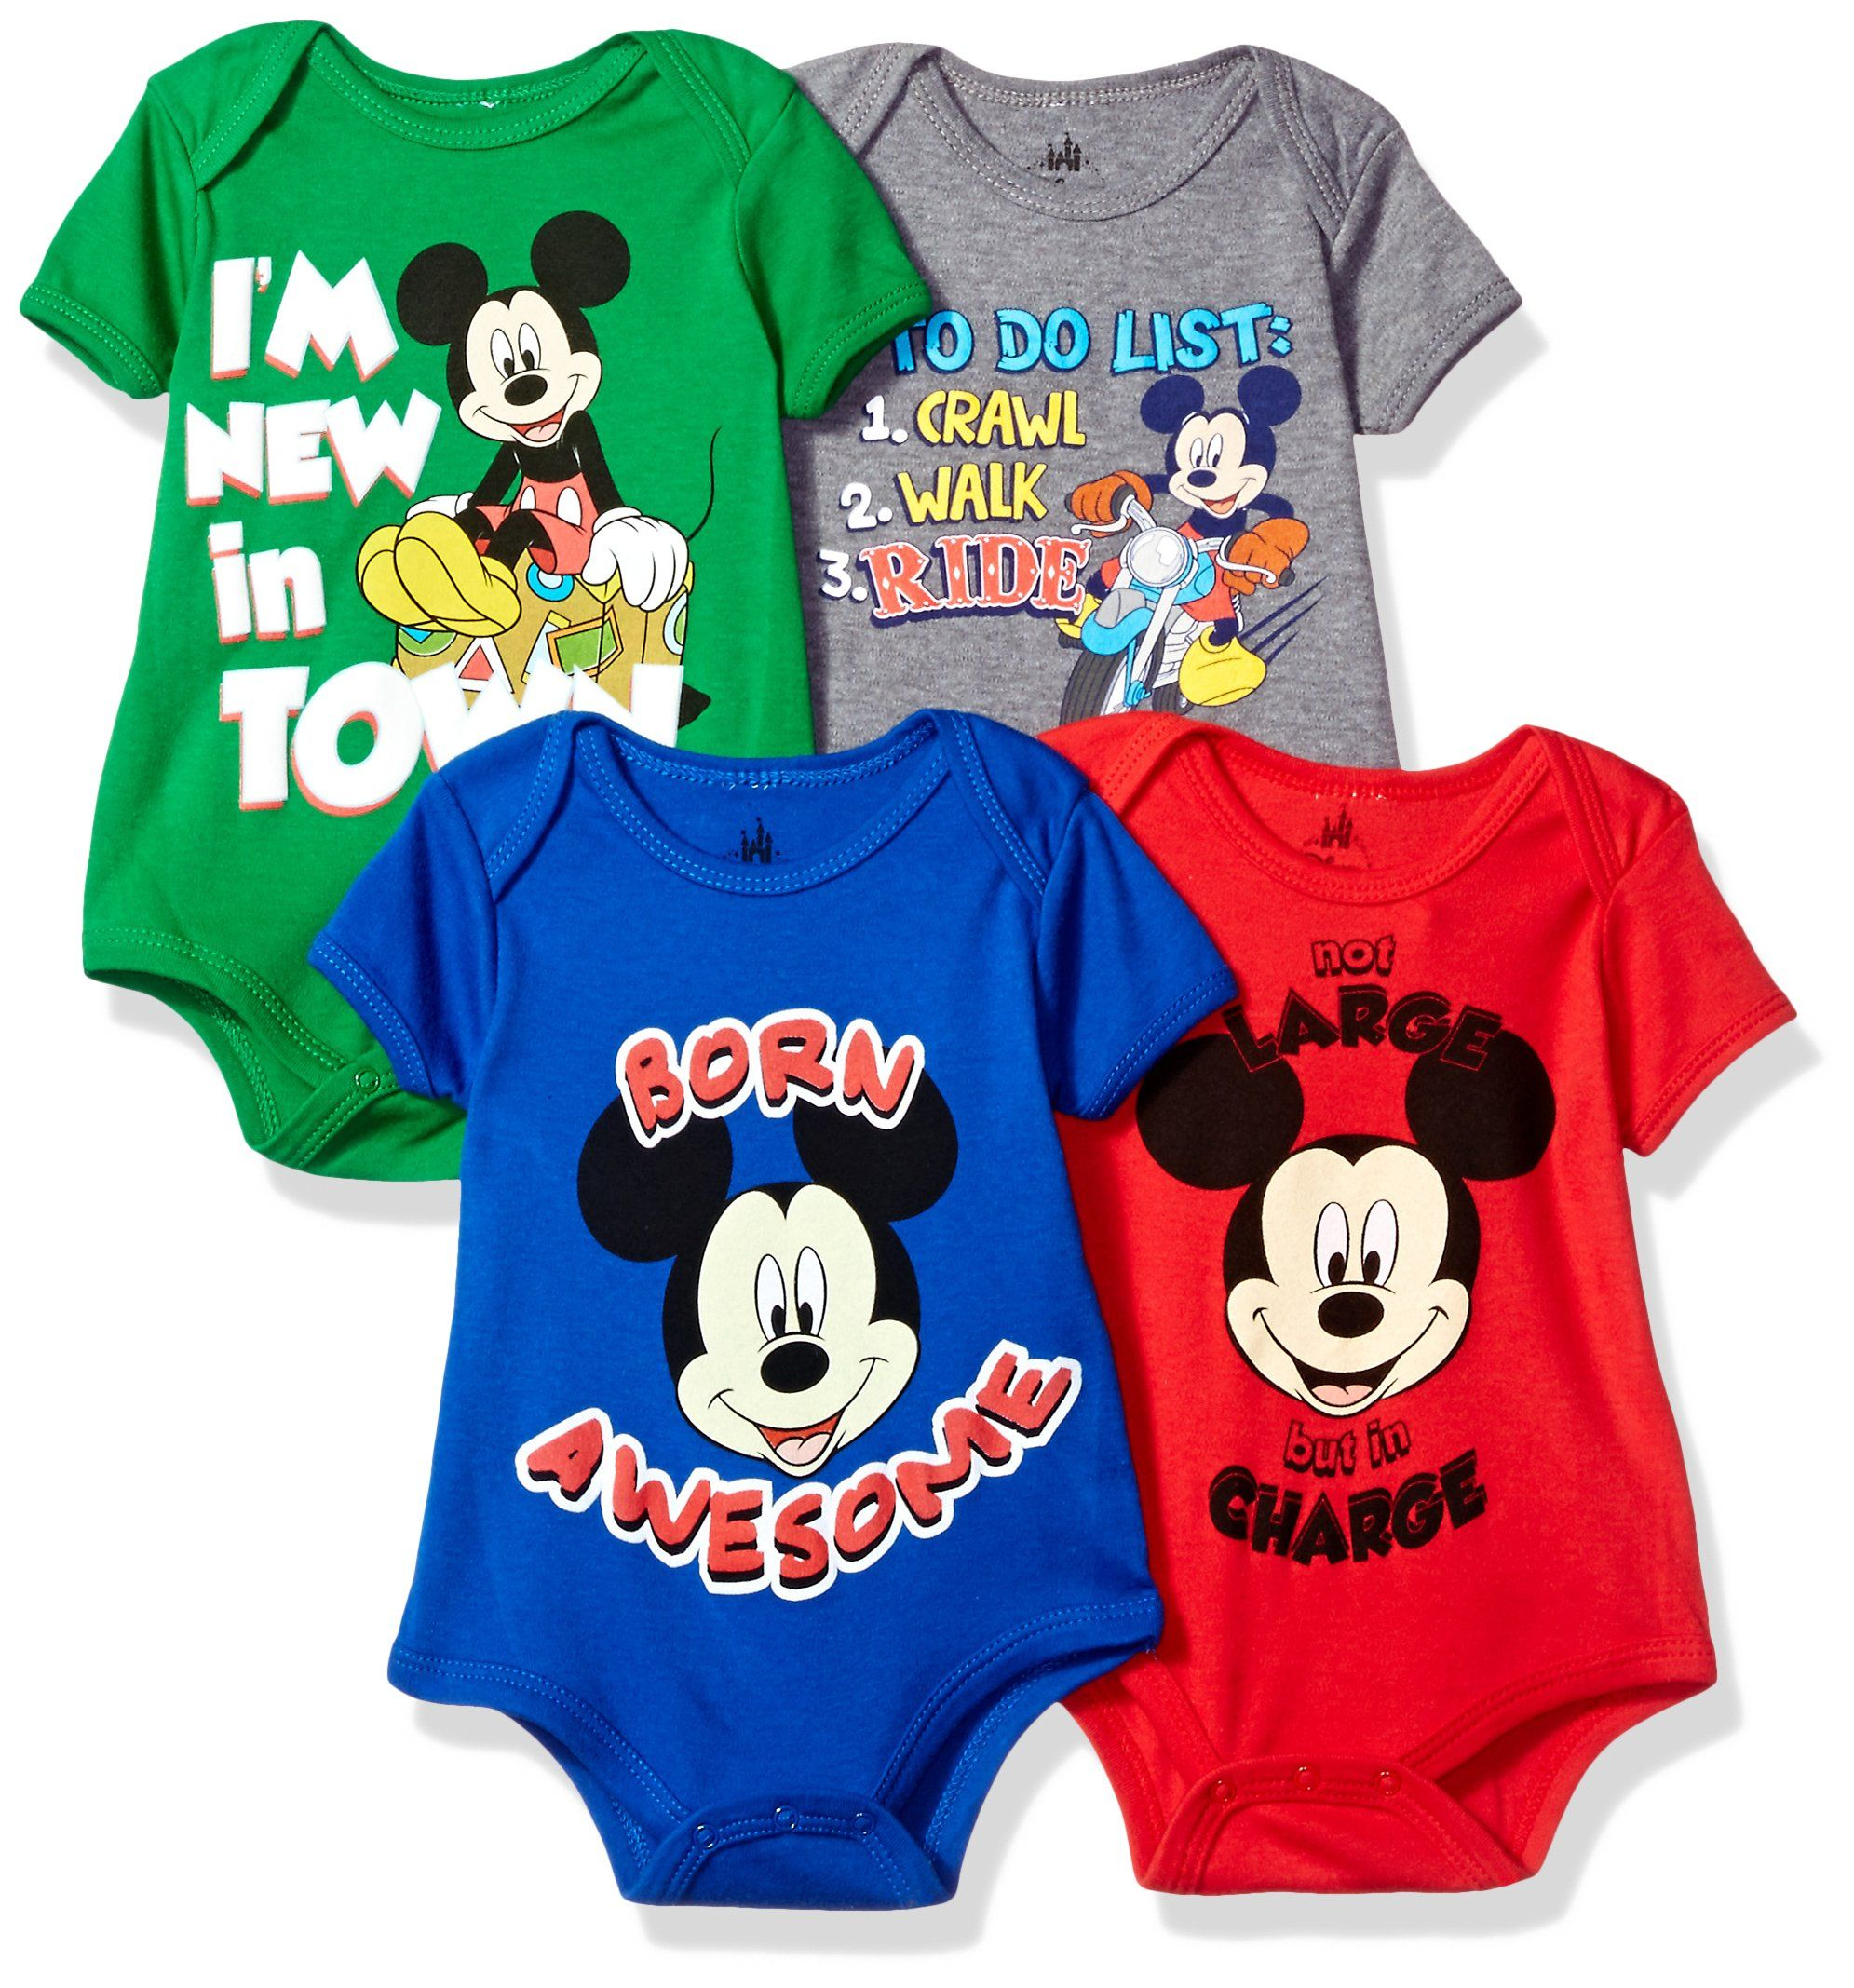 a7fb88306 Disney Baby Mickey Mouse 4-Pack Short Sleeve Bodysuit, Heather  Grey/Royal/Red/Green, 3-6M. Officially licensed. Super soft infant baby  bodysuit creeper.